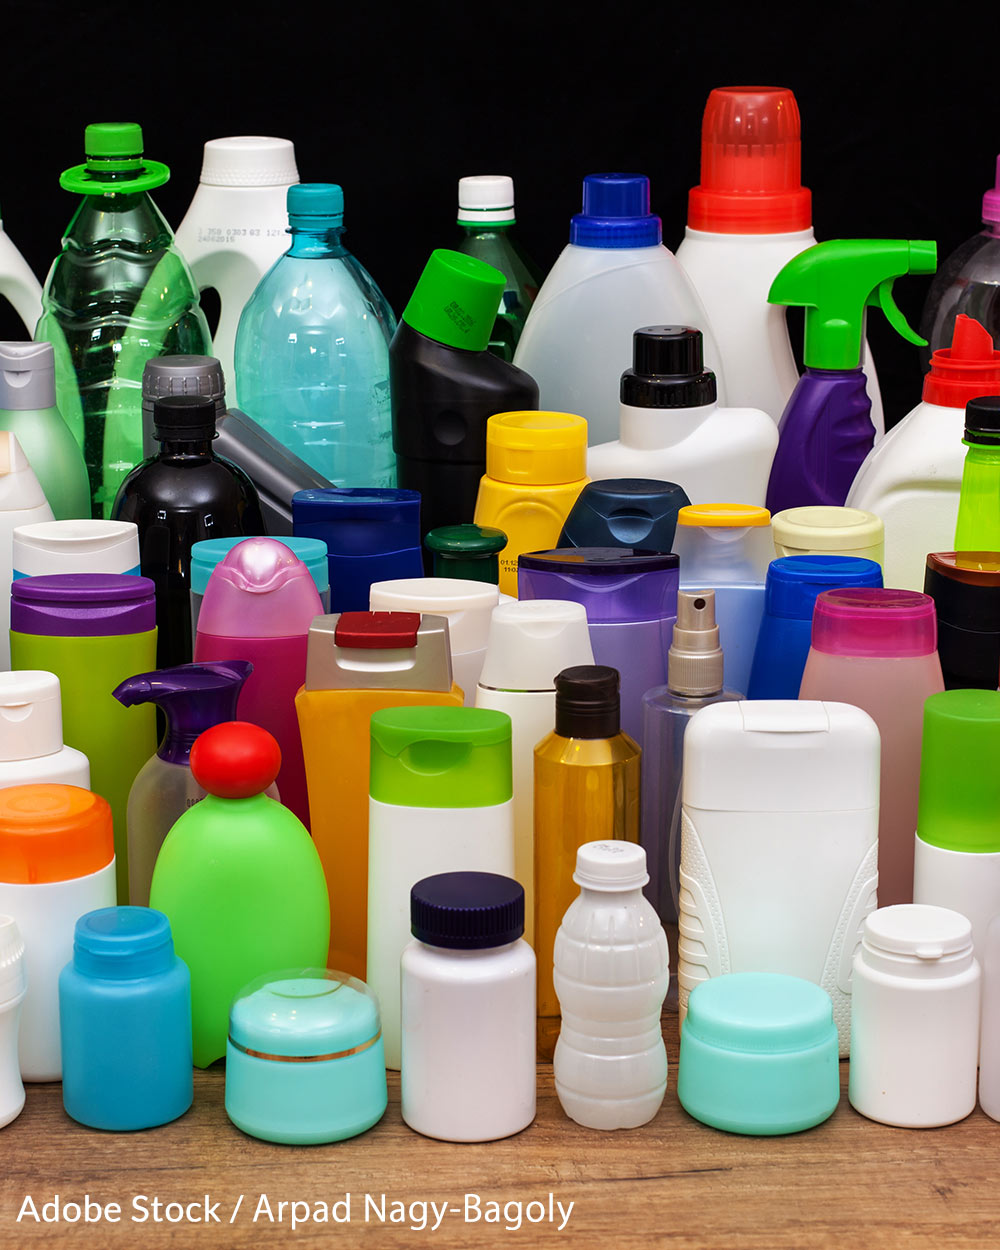 BPA is found in many plastics, and has been linked to serious health issues.